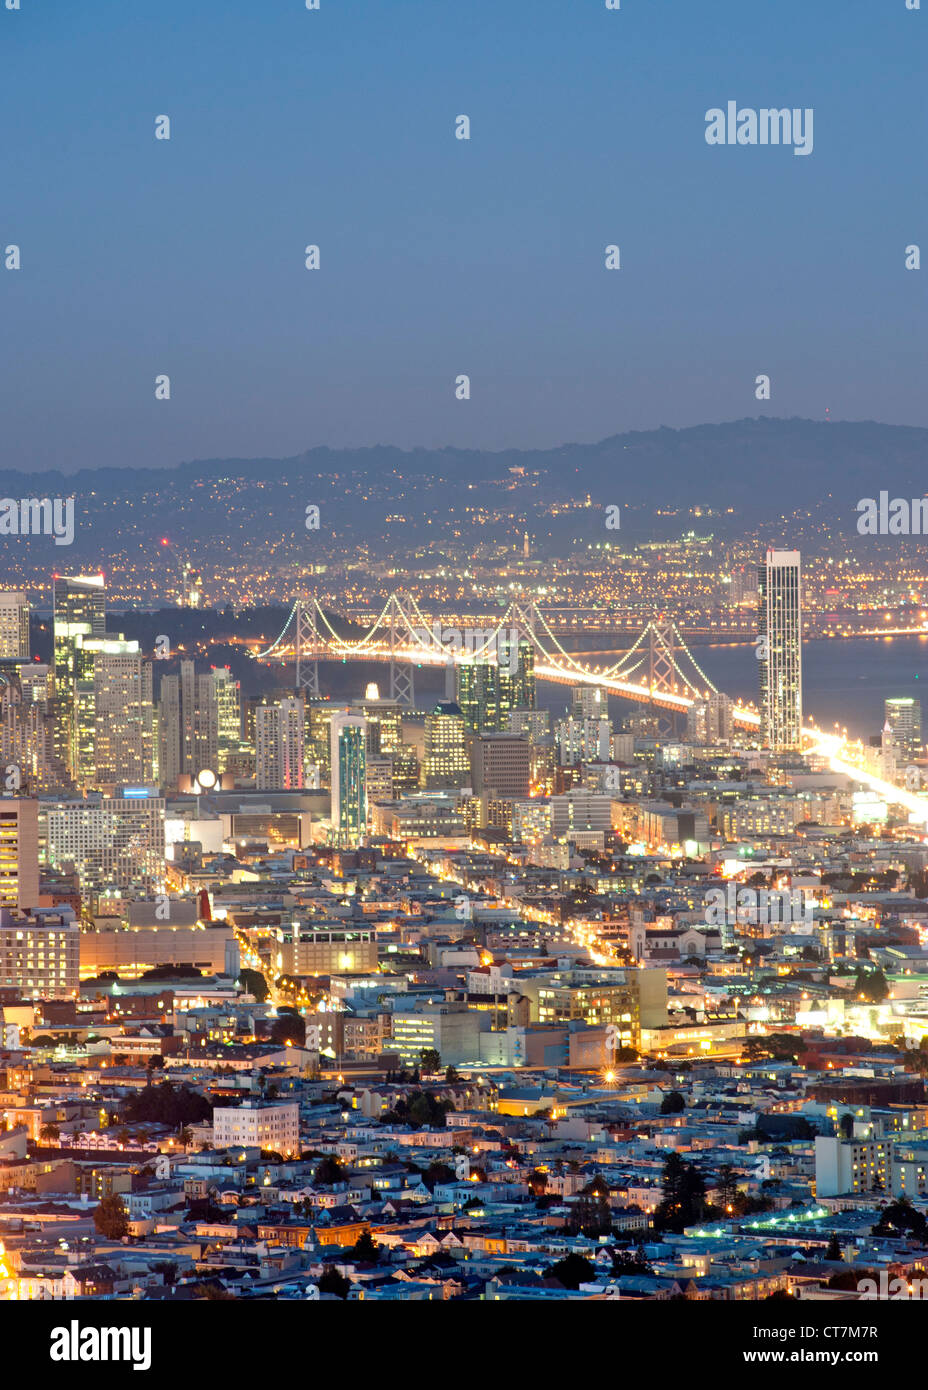 Dusk view across San Francisco and the Oakland Bay Bridge from the summit of Twin Peaks in California, USA. - Stock Image